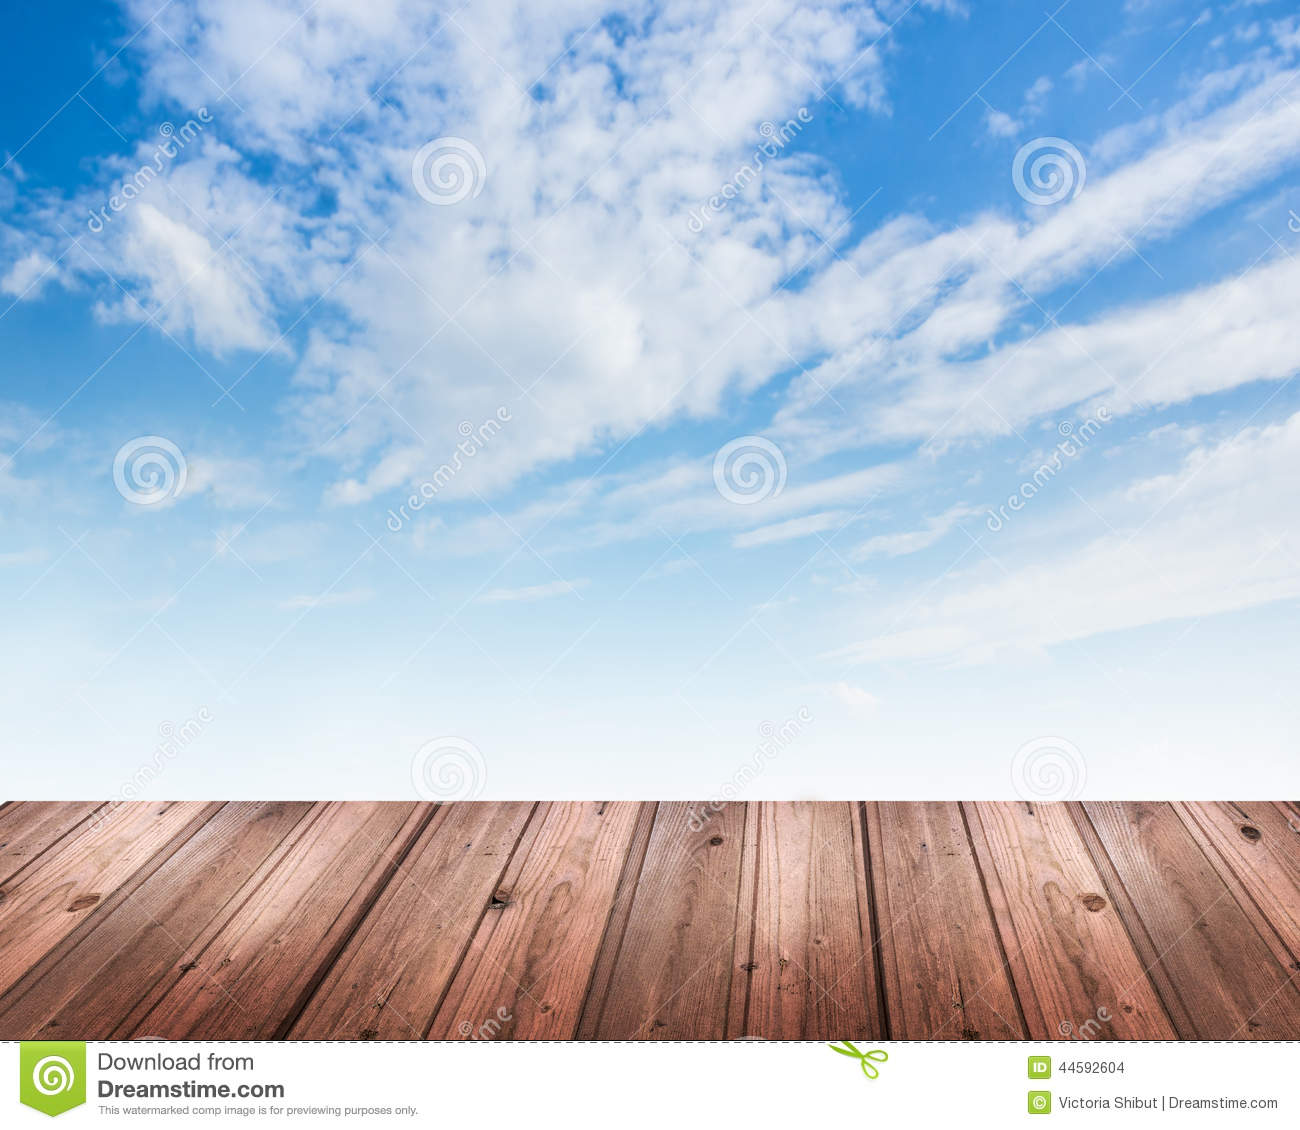 Background with blue sky and wooden table stock photo